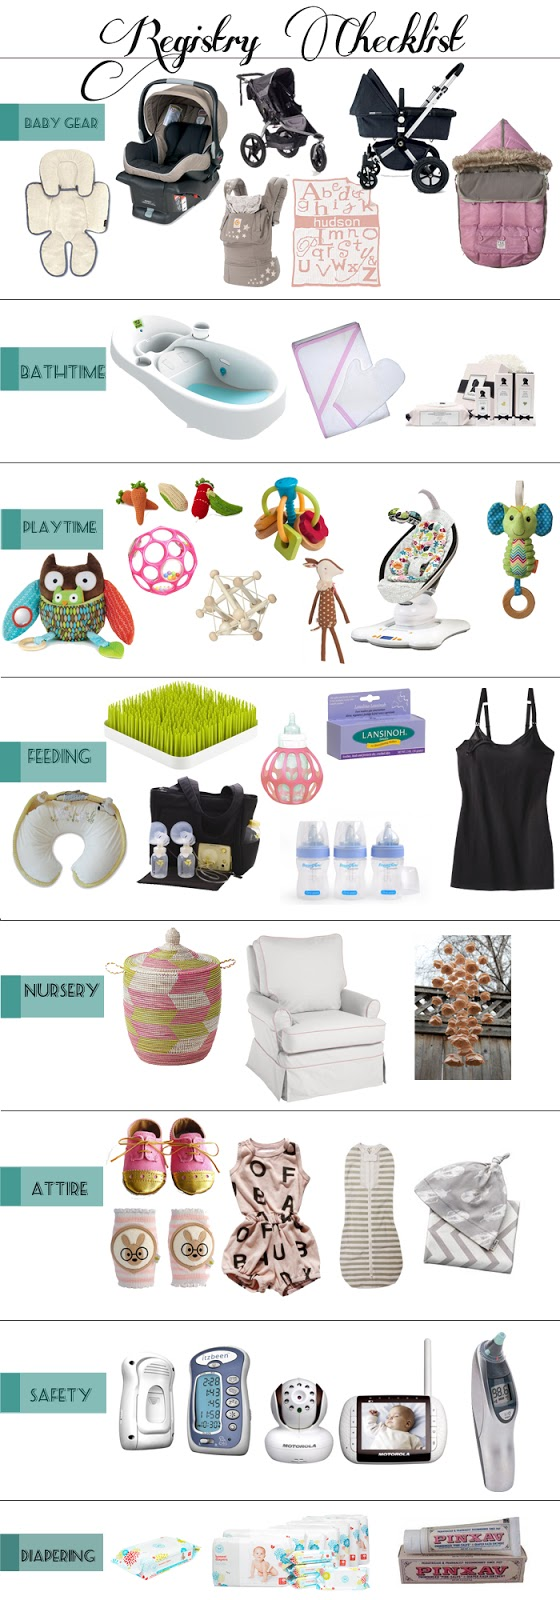 Baby Registry Checklist - Lynzy & Co.